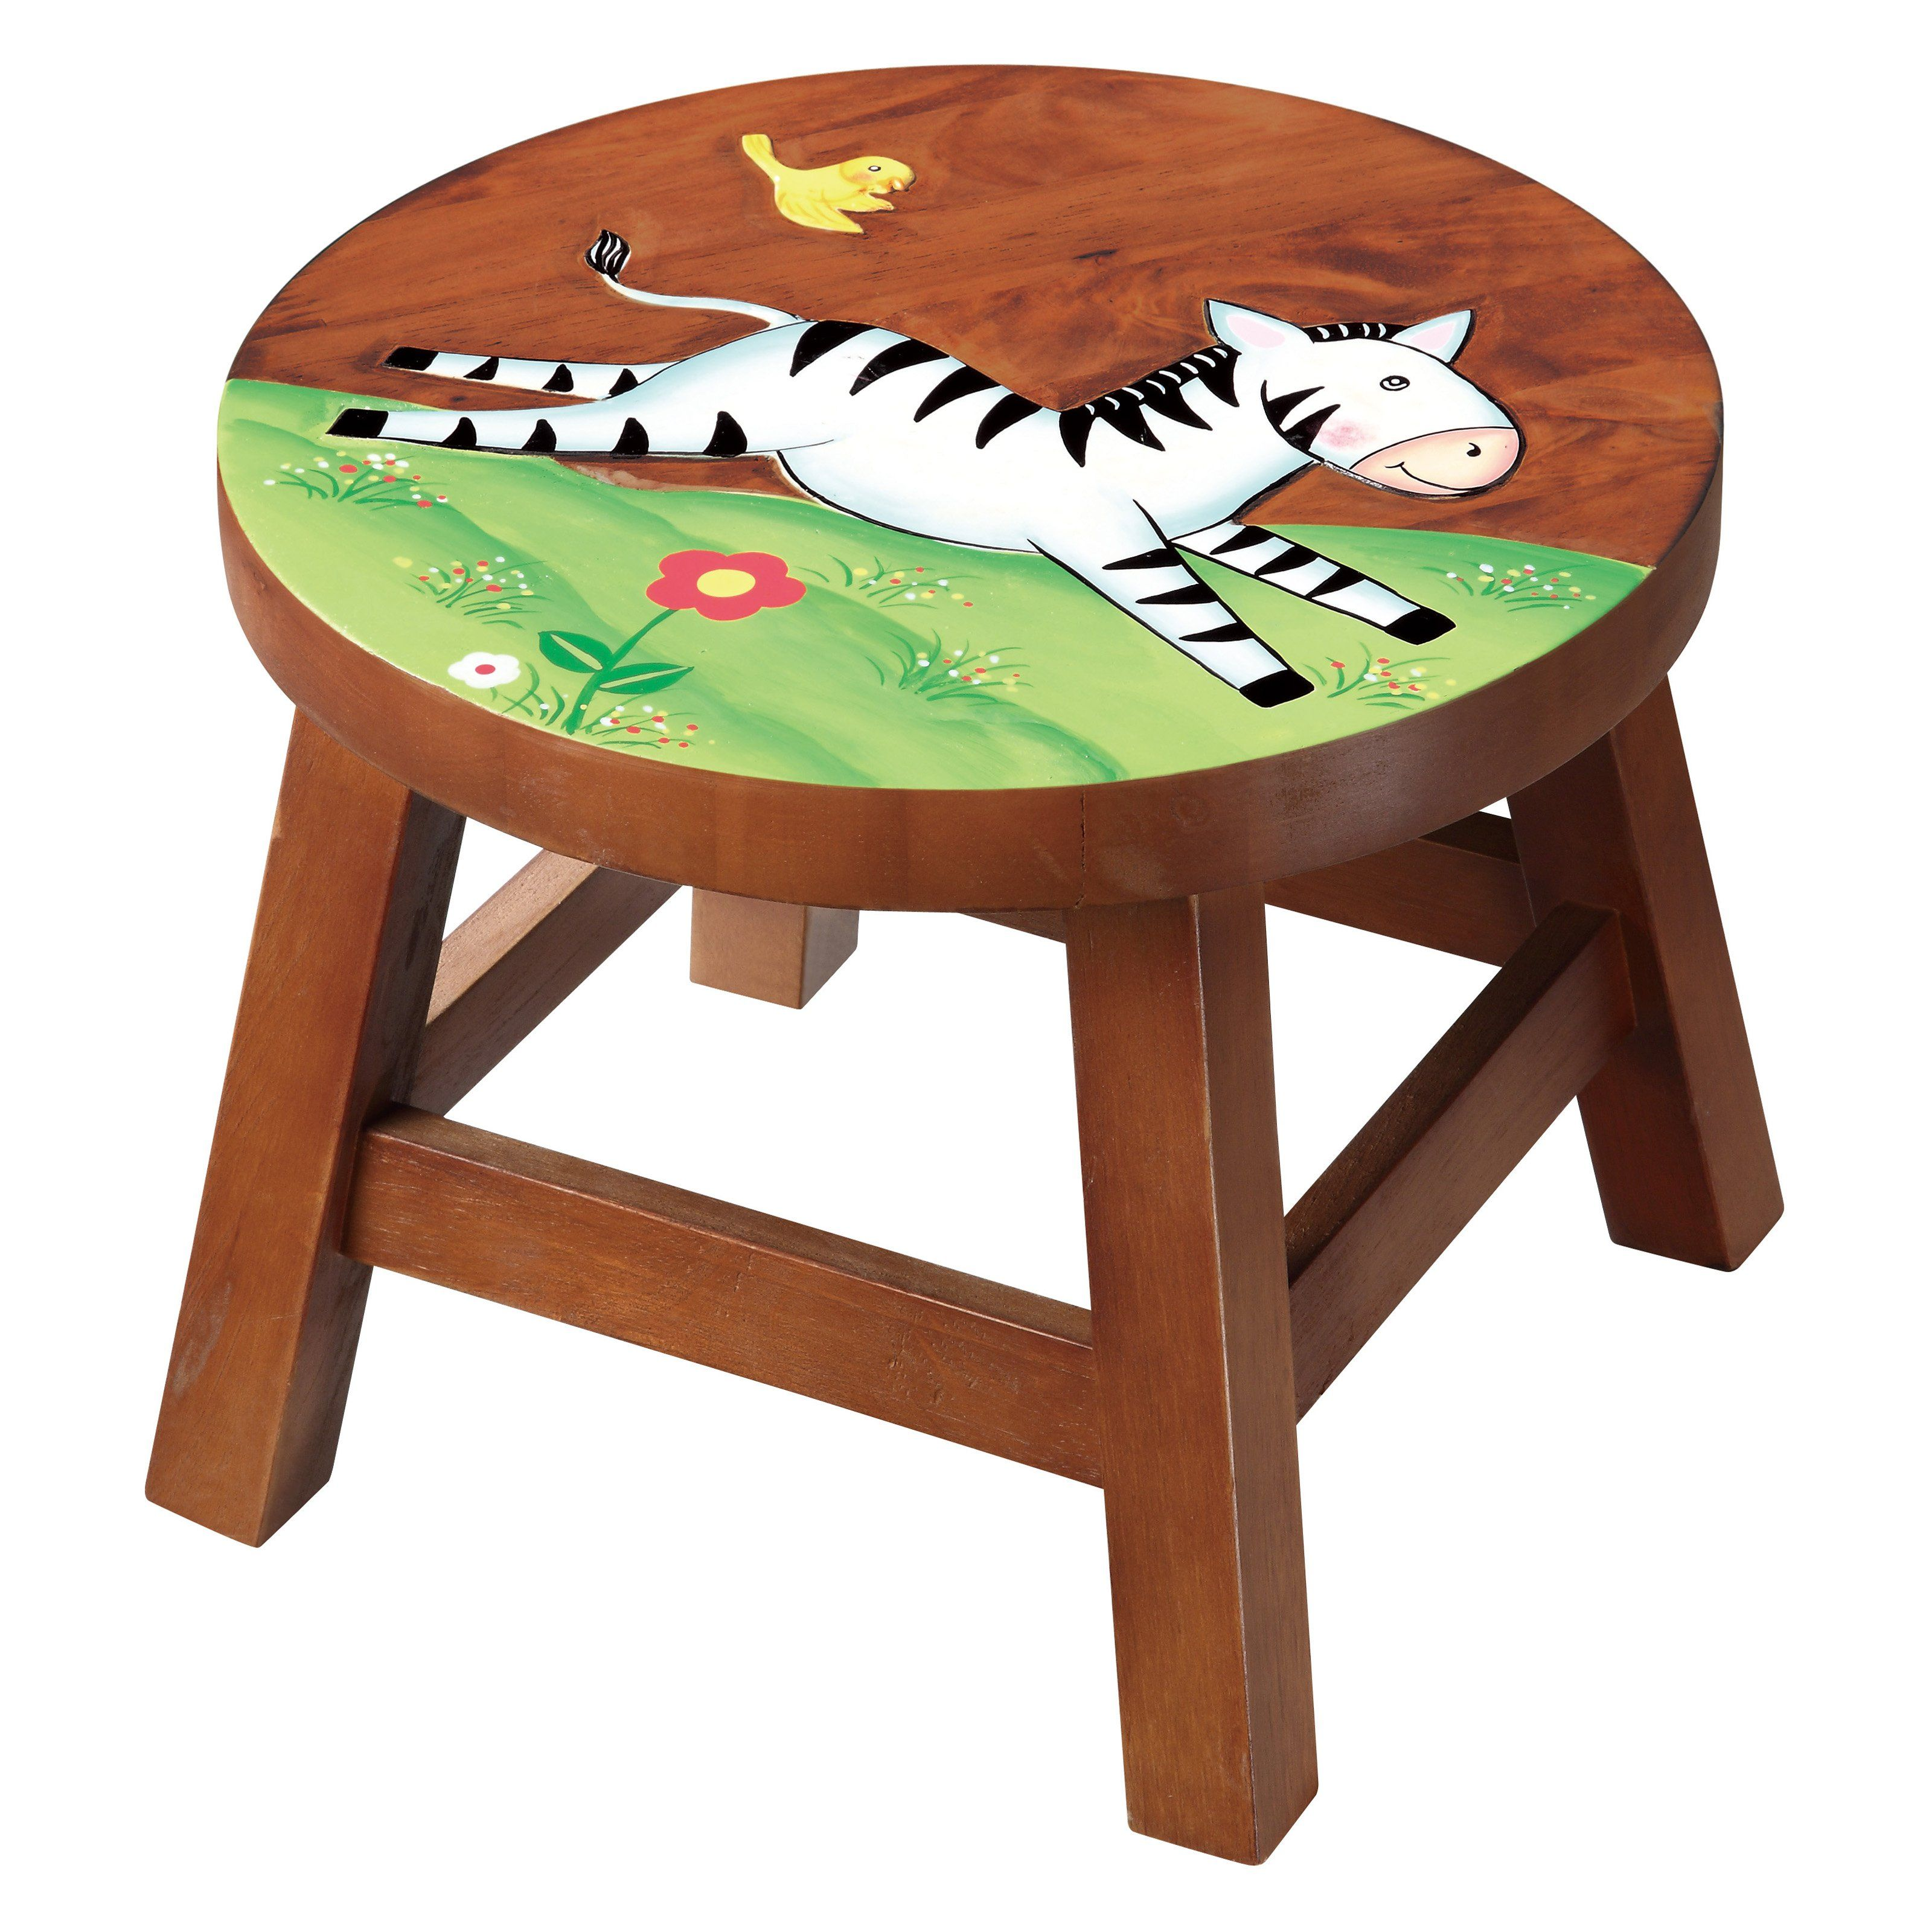 Have To Have It Teamson Kids Stool Zebra Kids Stool Wooden